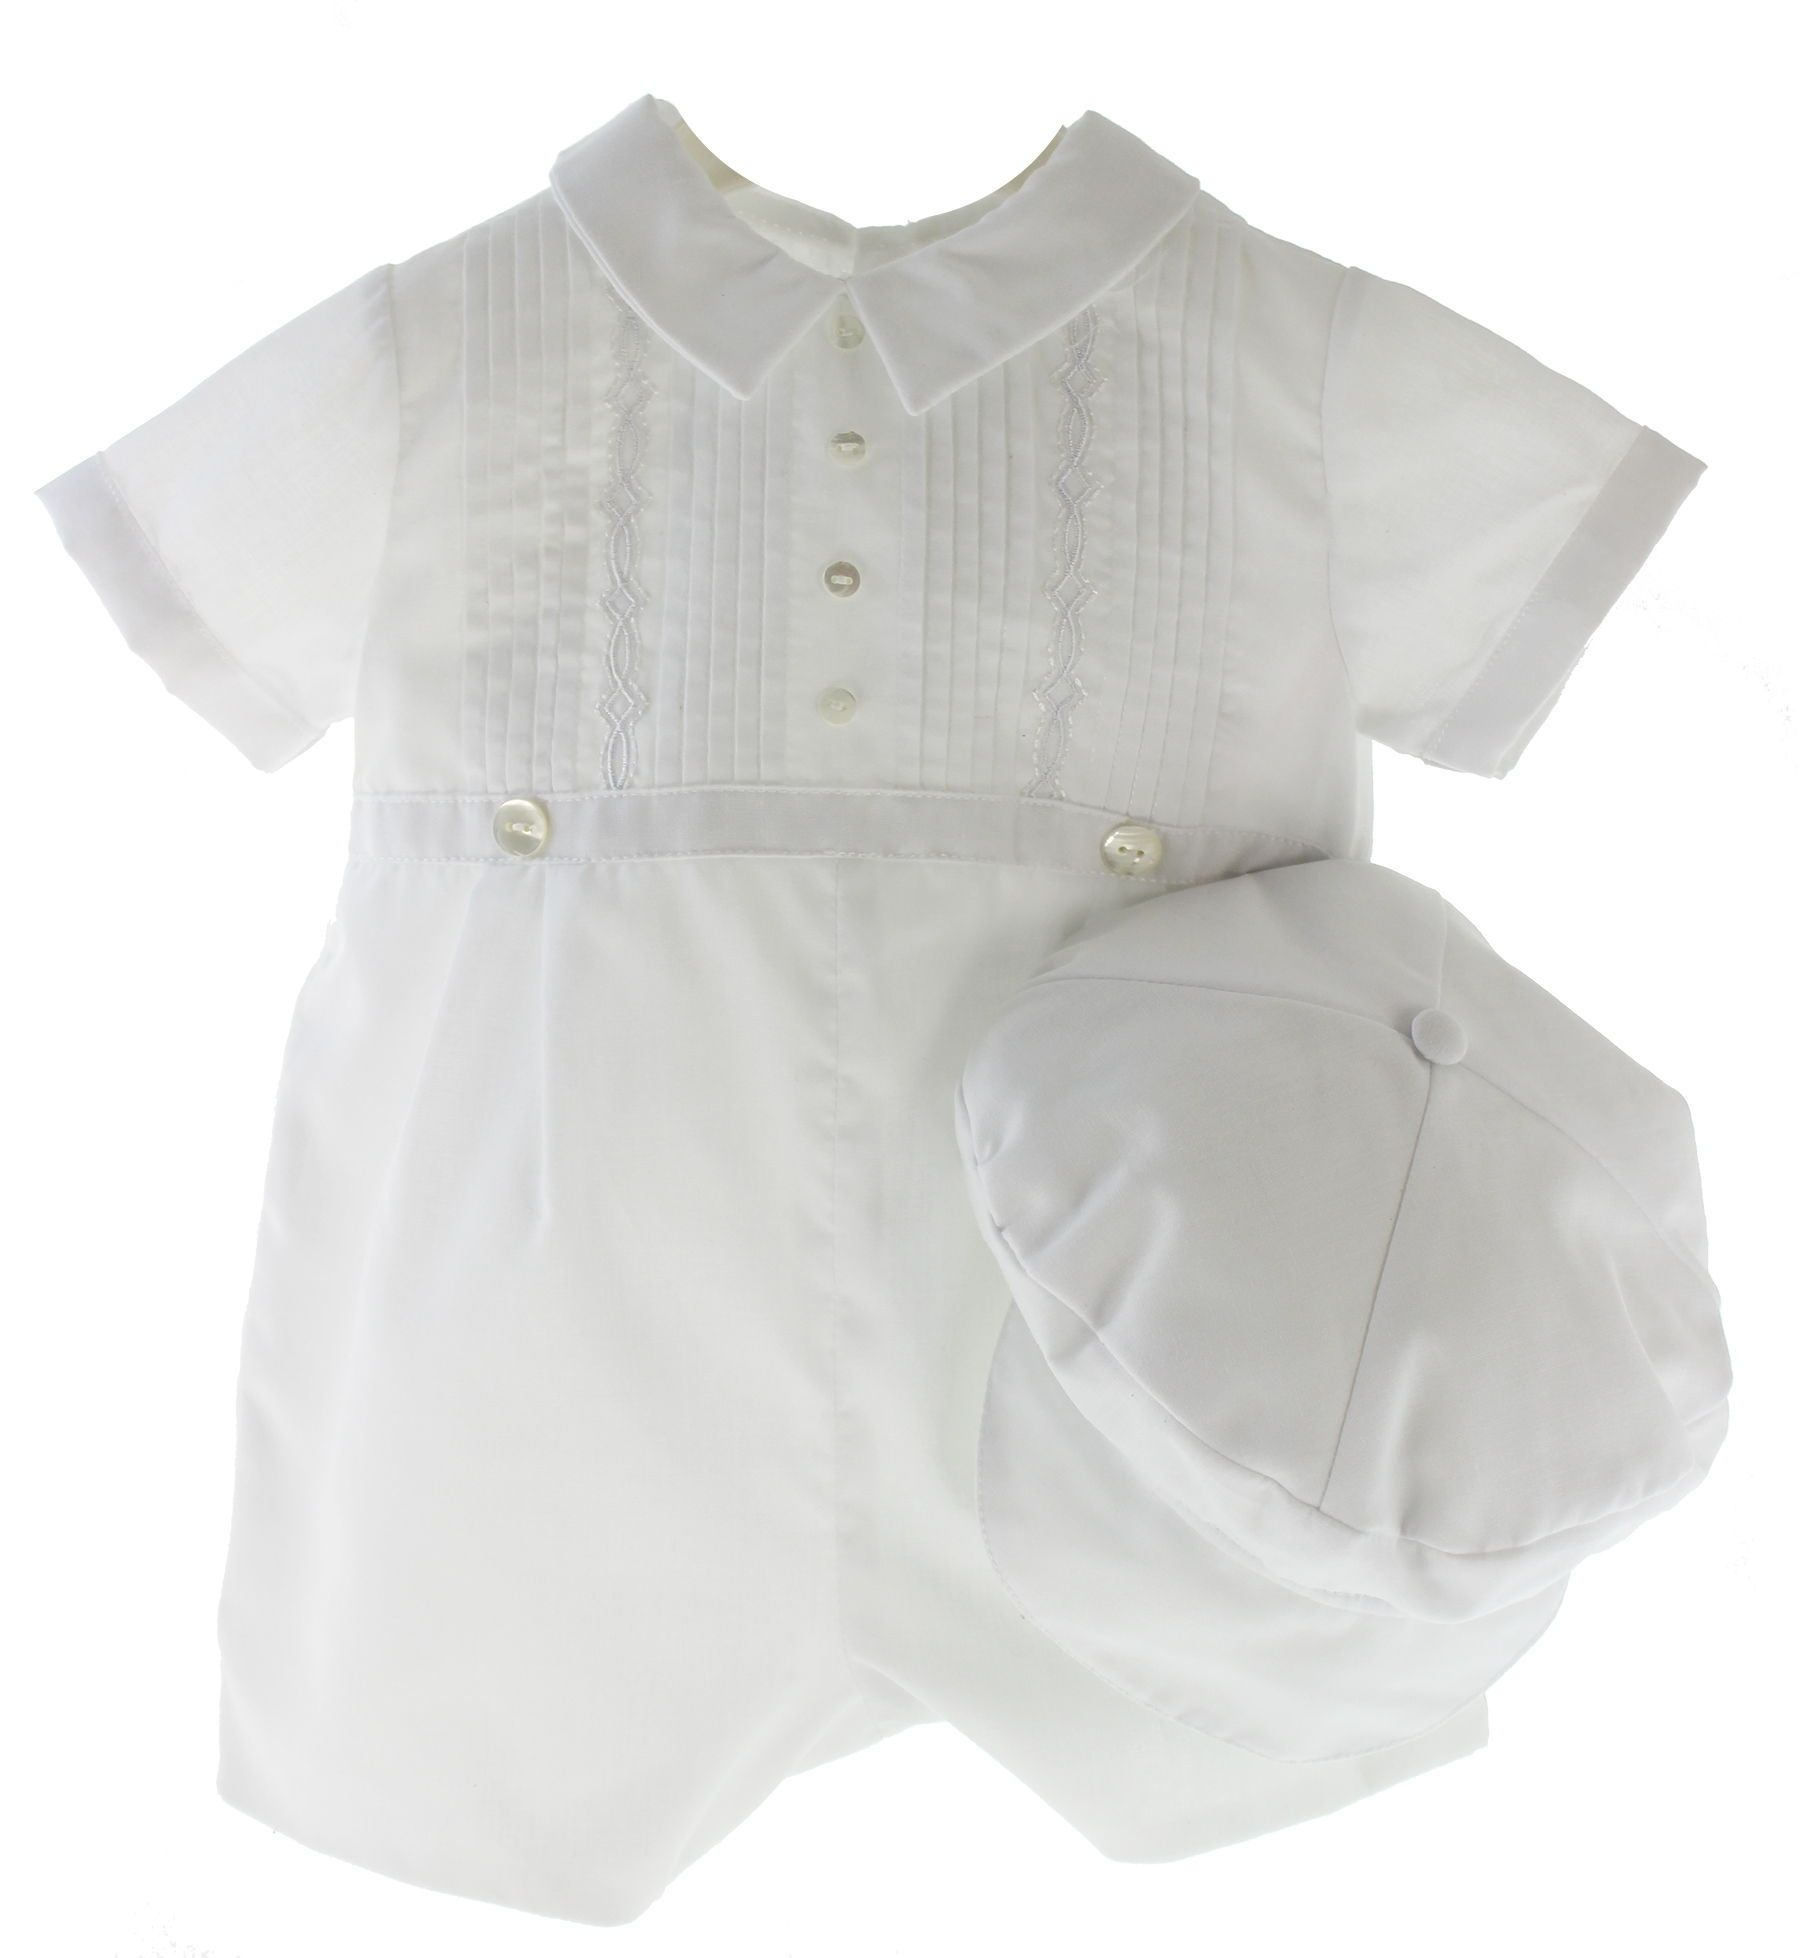 Sarah Louise Baby Boys White Special Occasion Outfit & Hat Set